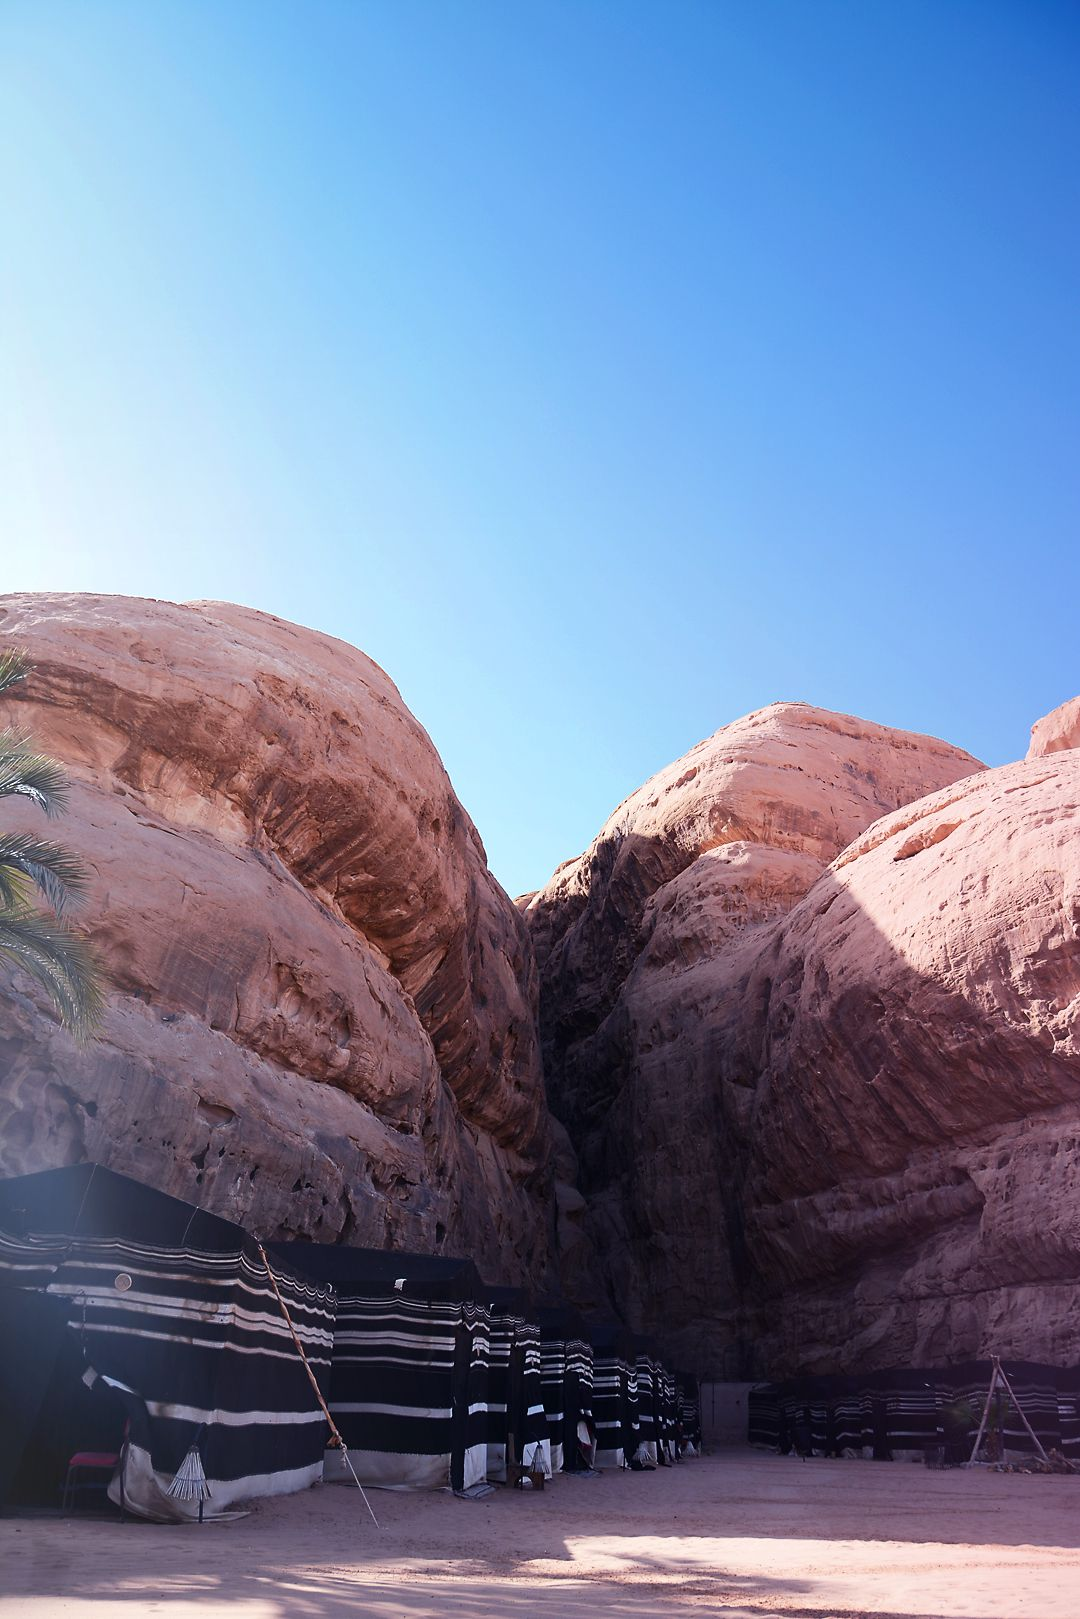 Views of Jordan, Wadi Rum, desert camp, Bedouin camps, bedouin - justlikesushi.com